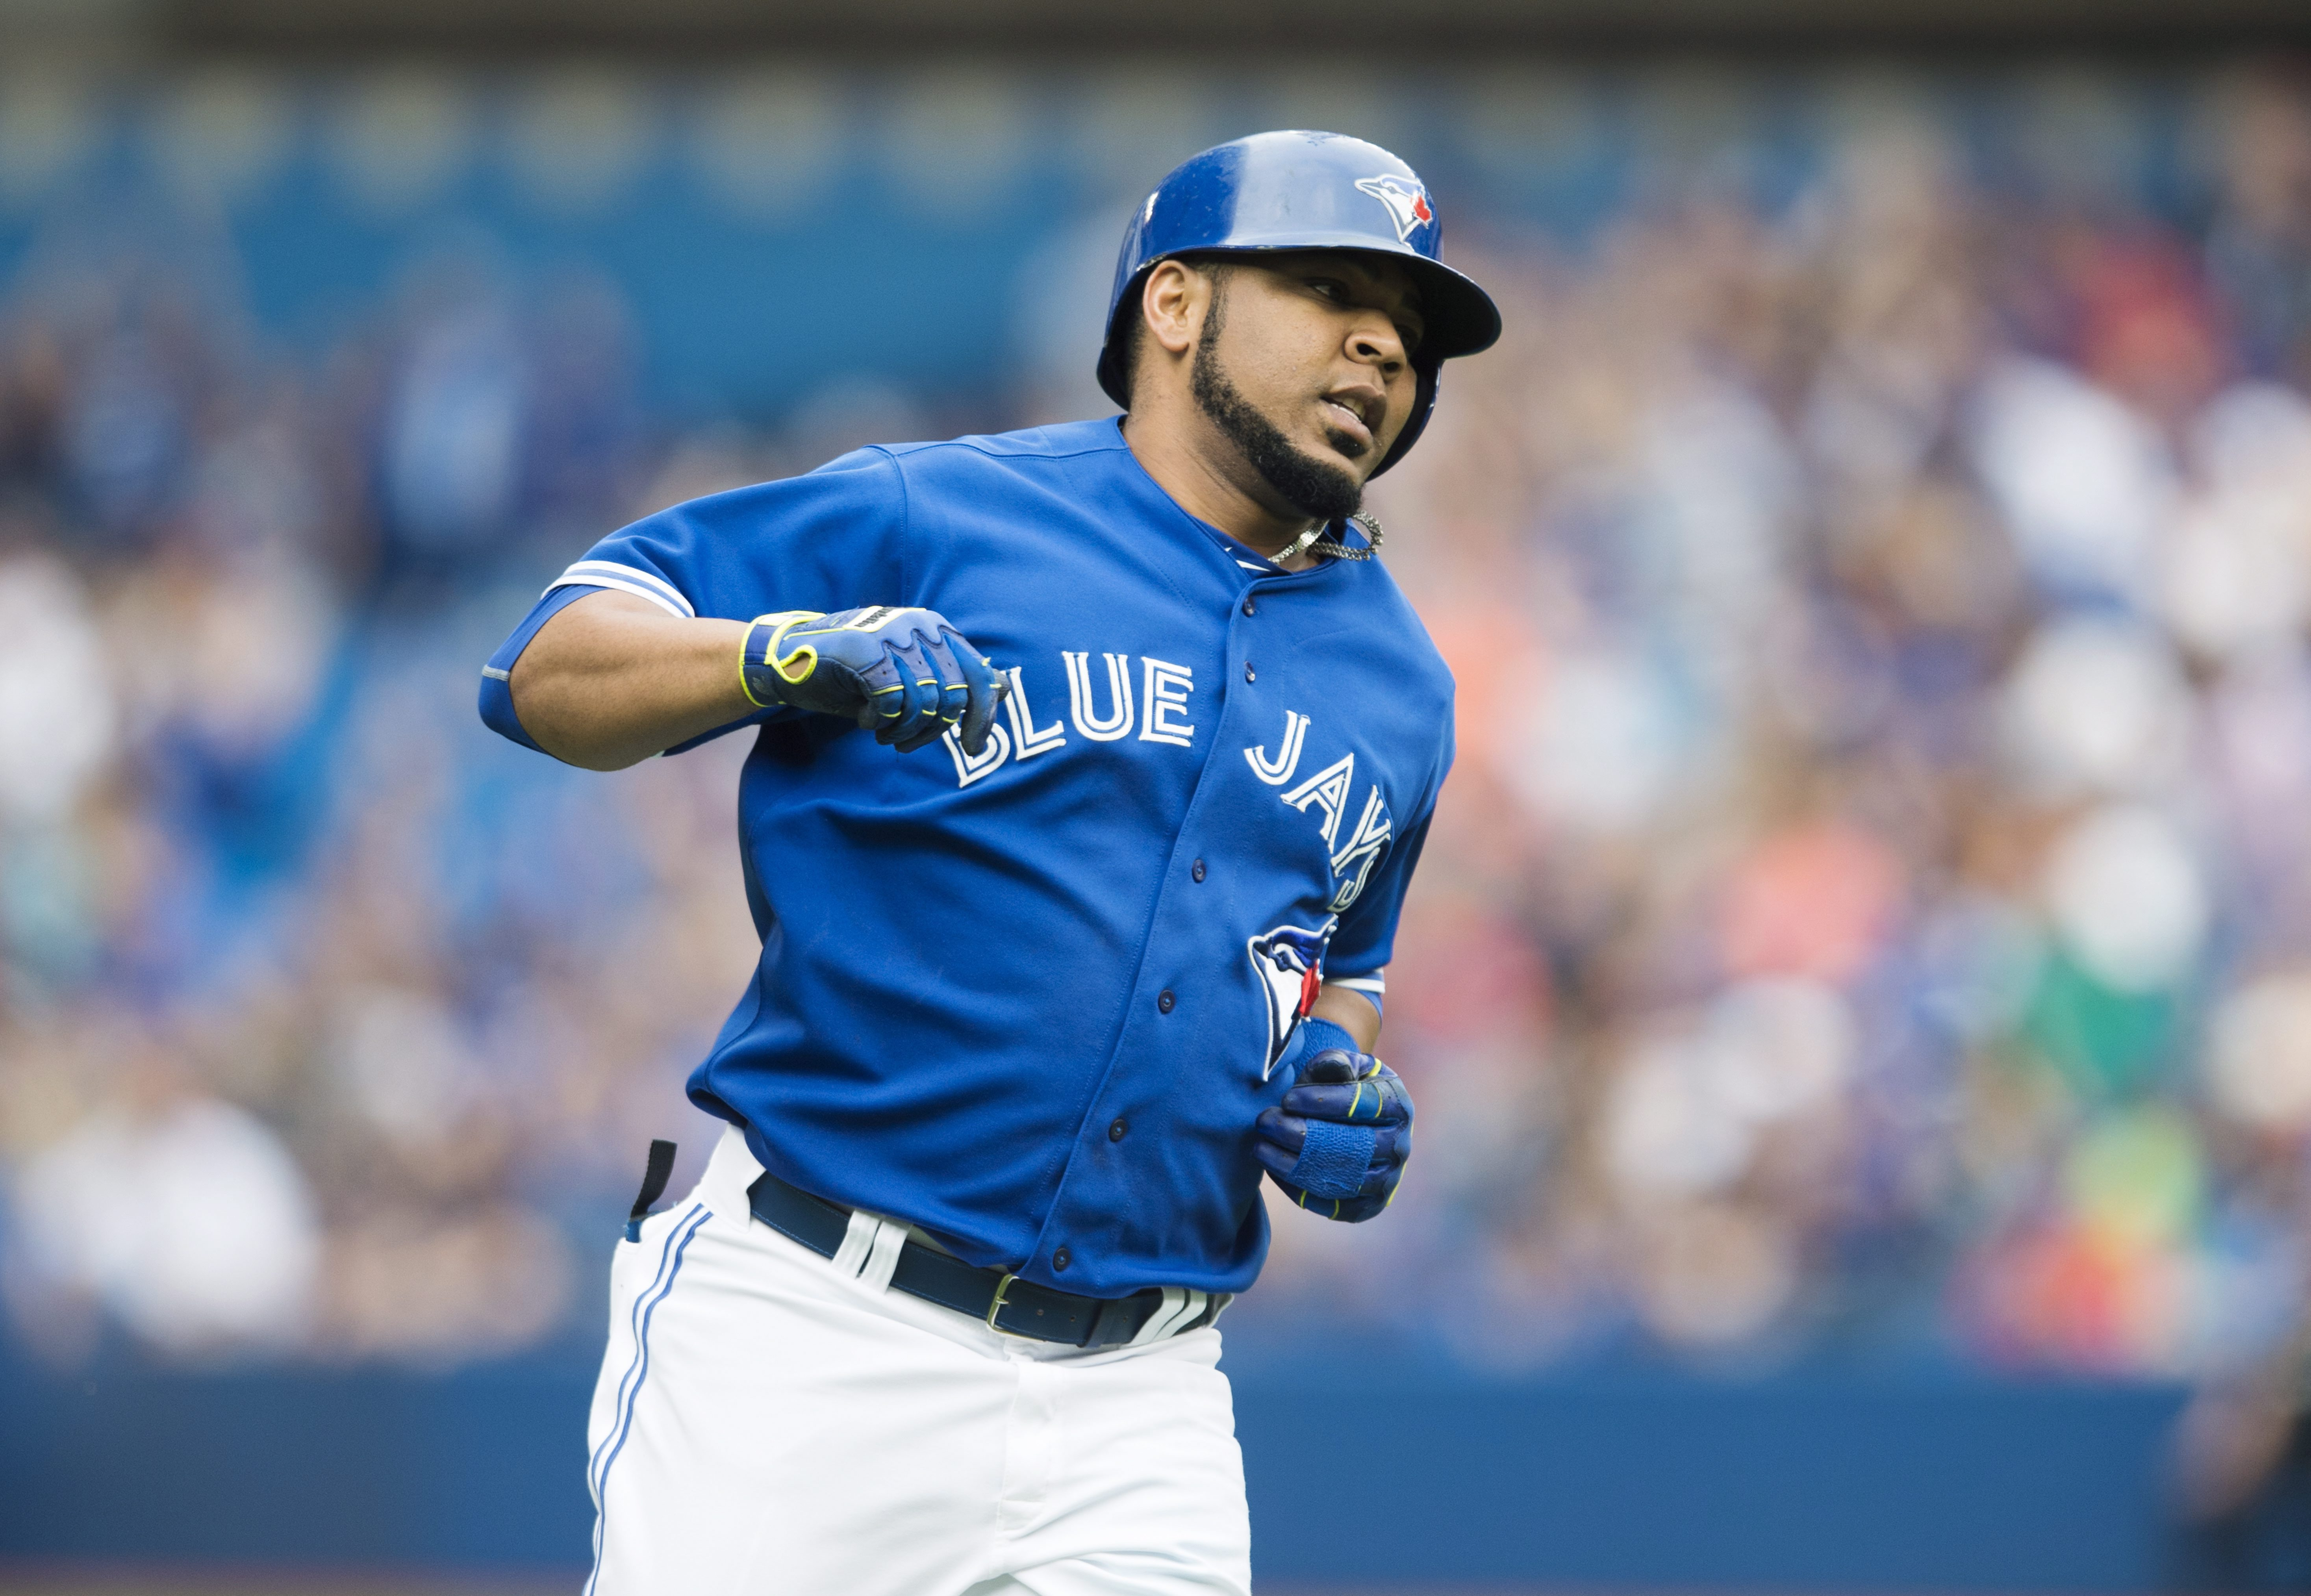 Toronto Blue Jays' Edwin Encarnacion rounds the bases following a three-run home run during the first inning of a baseball game against the Detroit Tigers in Toronto on Saturday, Aug. 29, 2015. (Darren Calabrese/The Canadian Press via AP) MANDATORY CREDIT